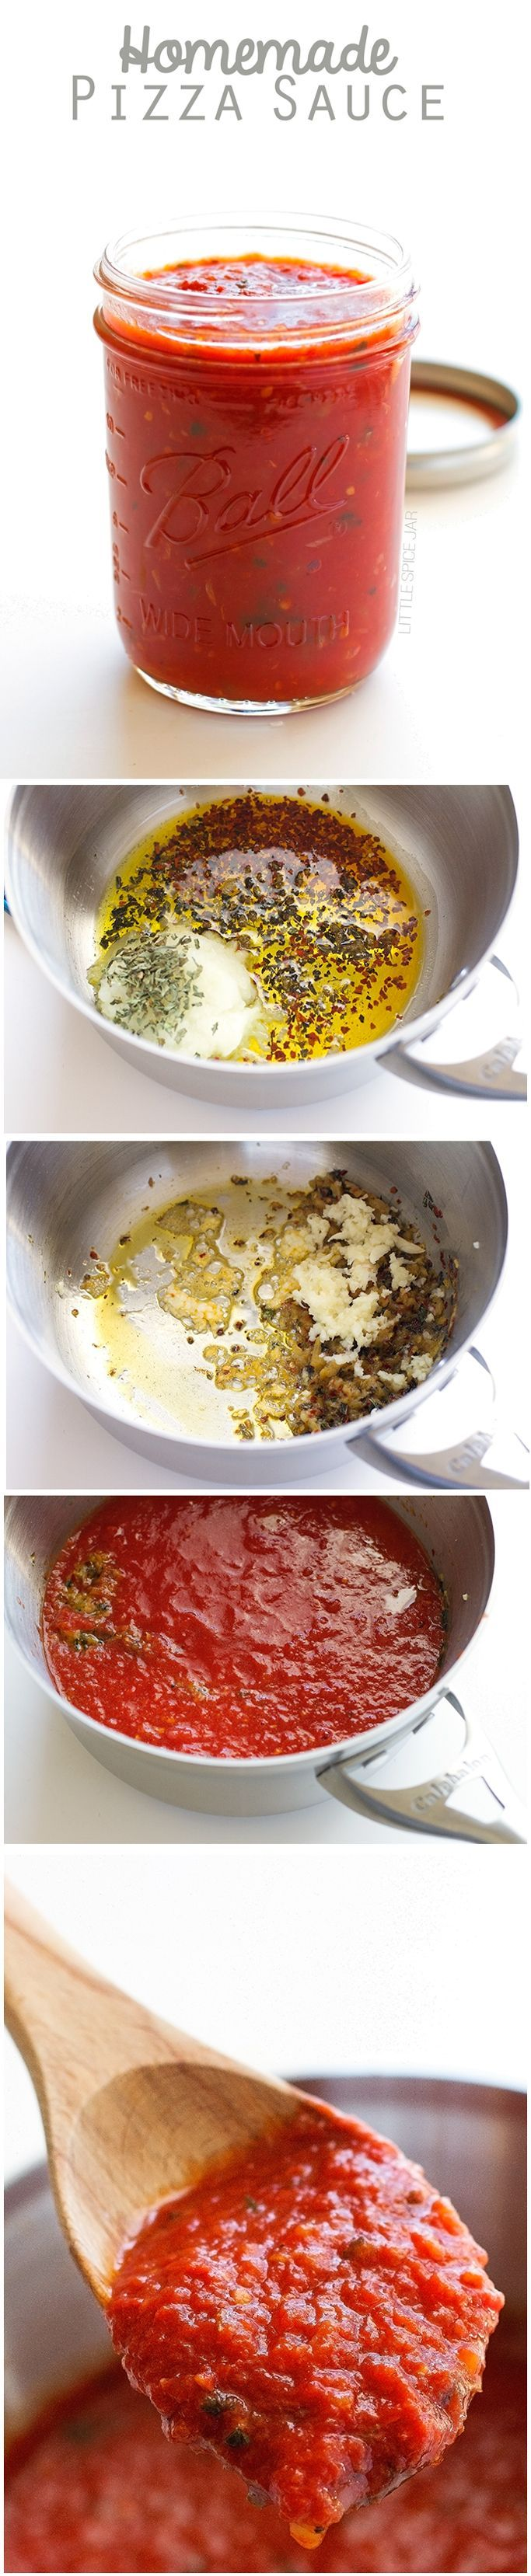 Homemade Pizza Sauce // simple, clean, fresh & healthy #diy